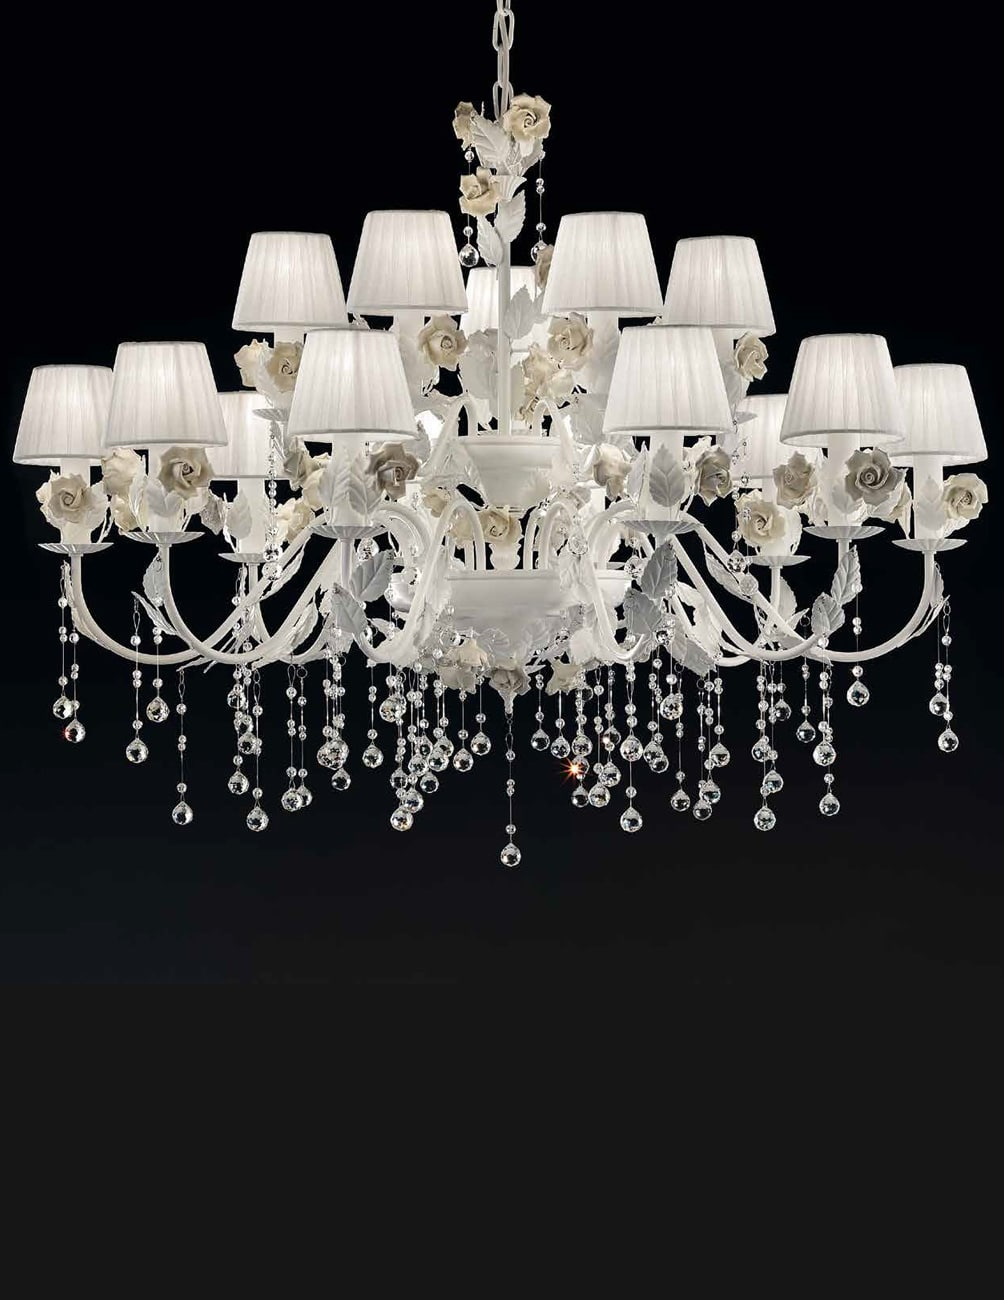 decorative lighting chandeliers 79